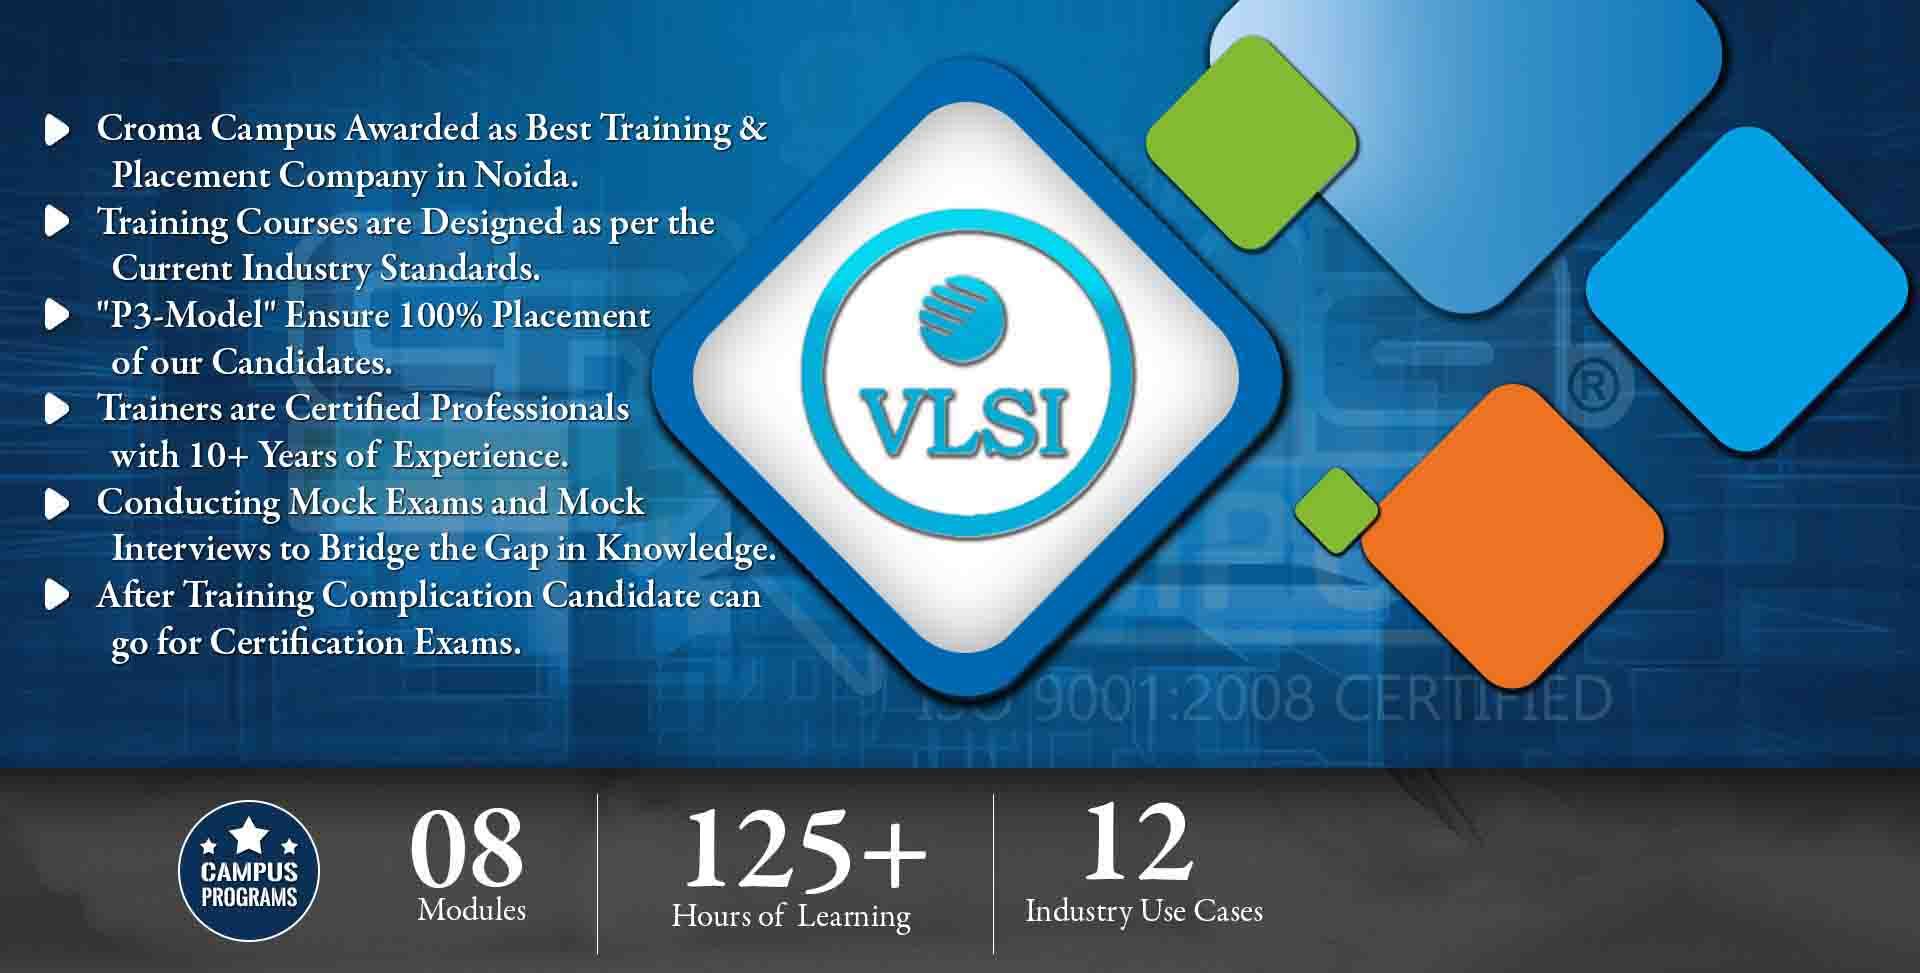 VLSI Training in Noida- Croma Campus